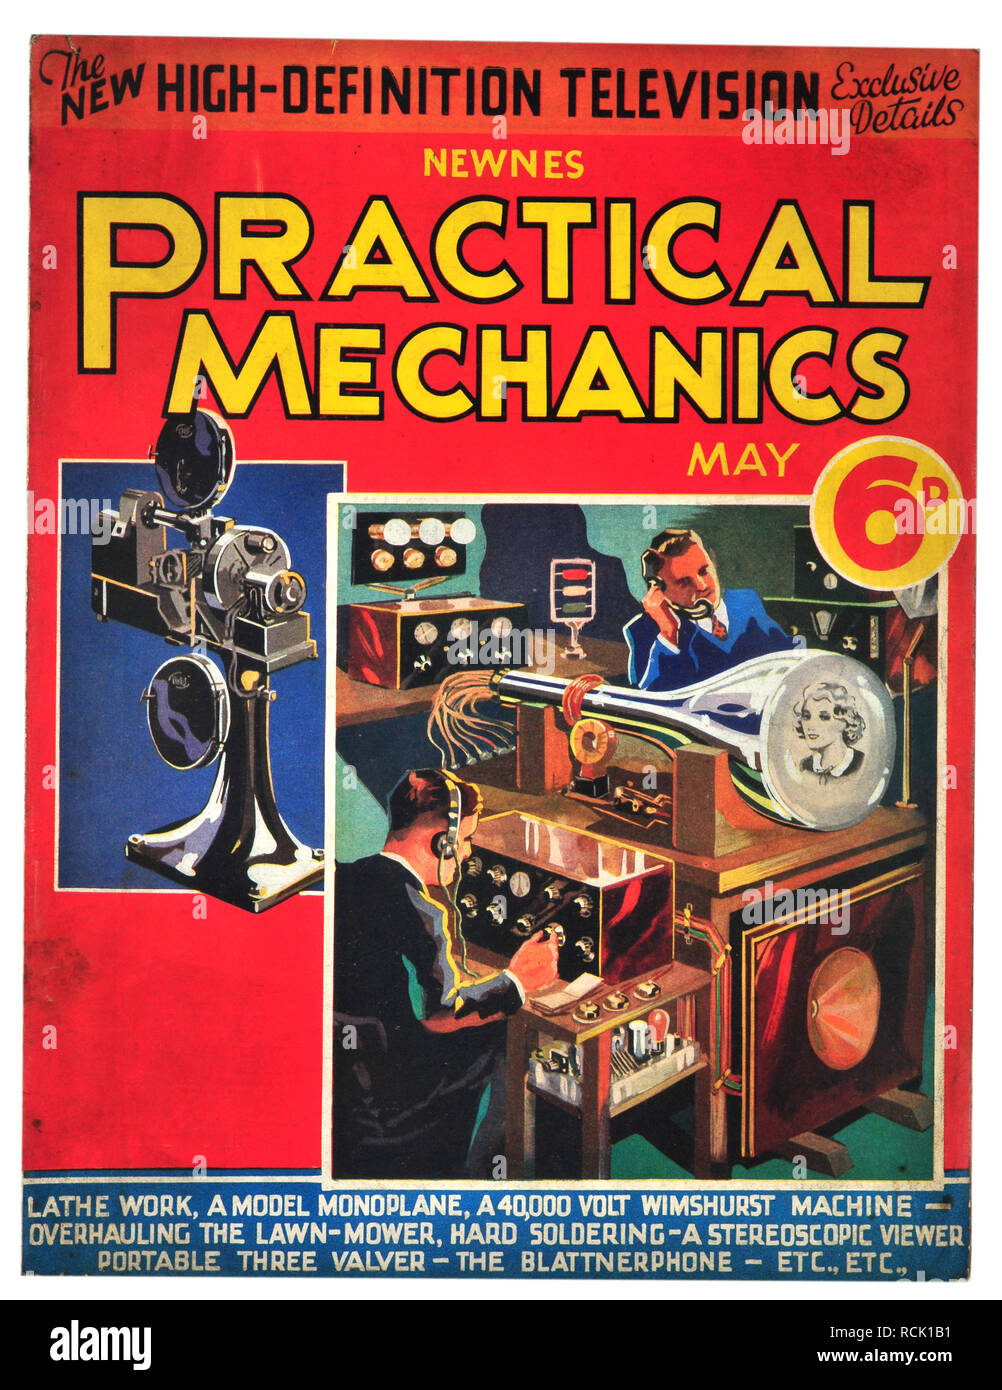 Newnes practical mechanics May 1934 costing 6D The new high-definition television - Stock Image